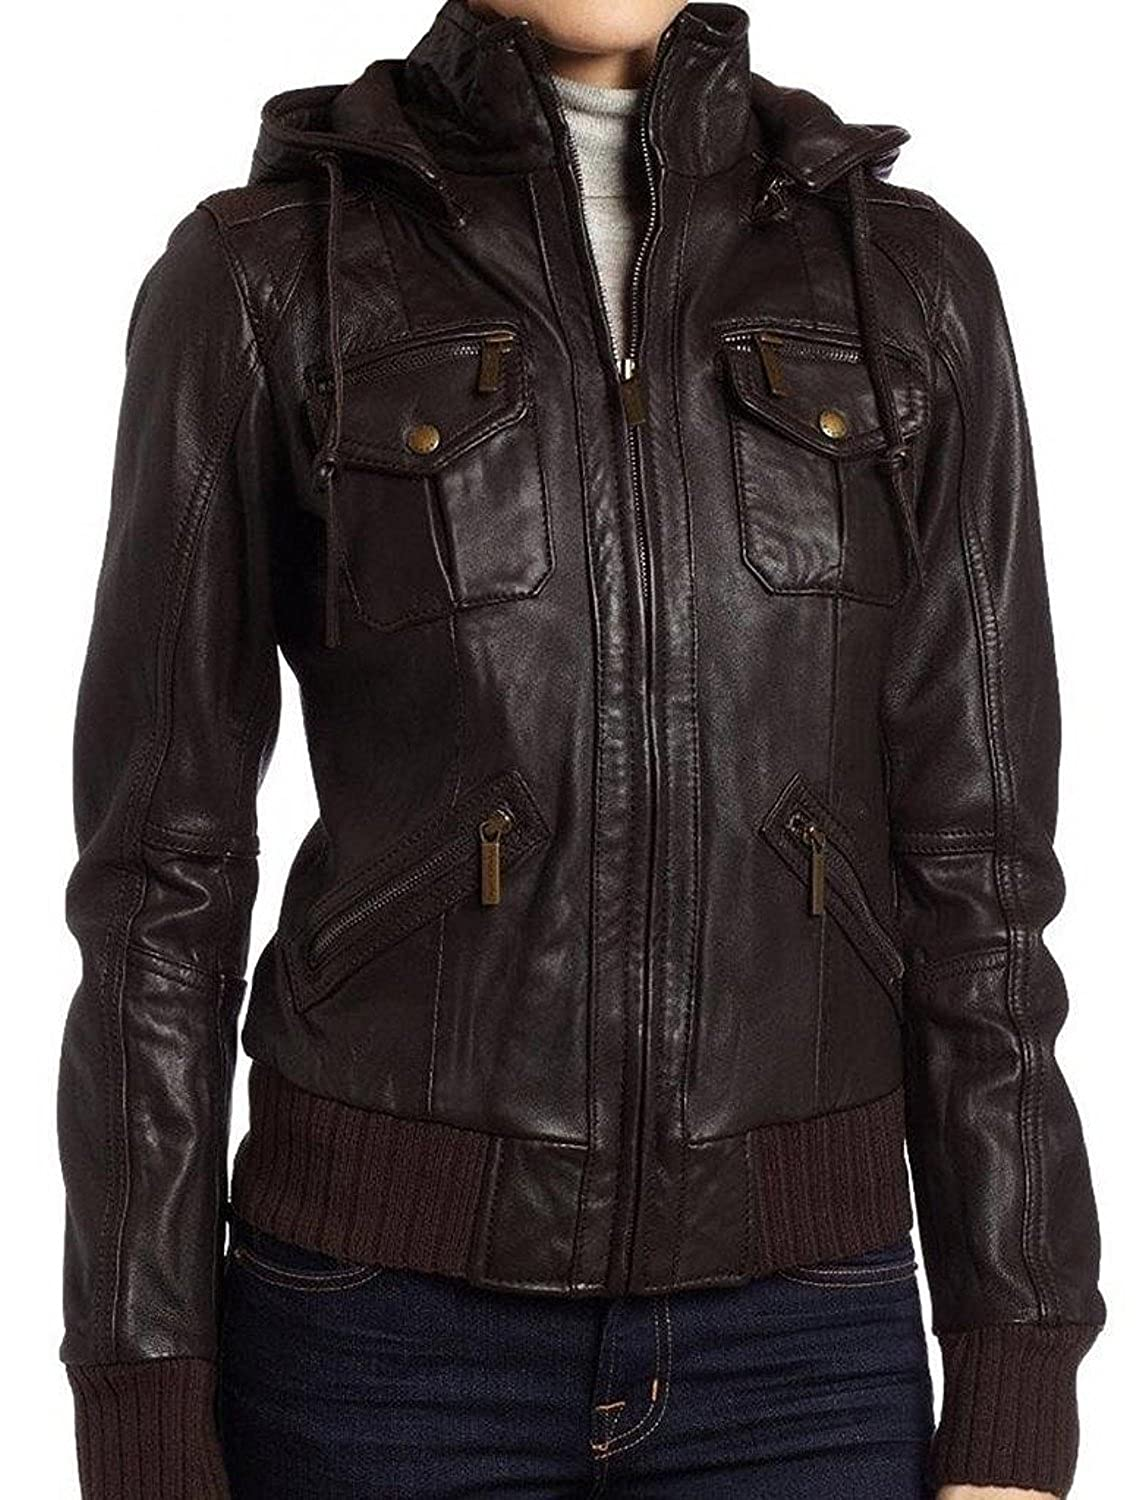 The Leather Factory Women's Lambskin Detachable Hoodie Leather Bomber Jacket 051-XS-Brown -$P